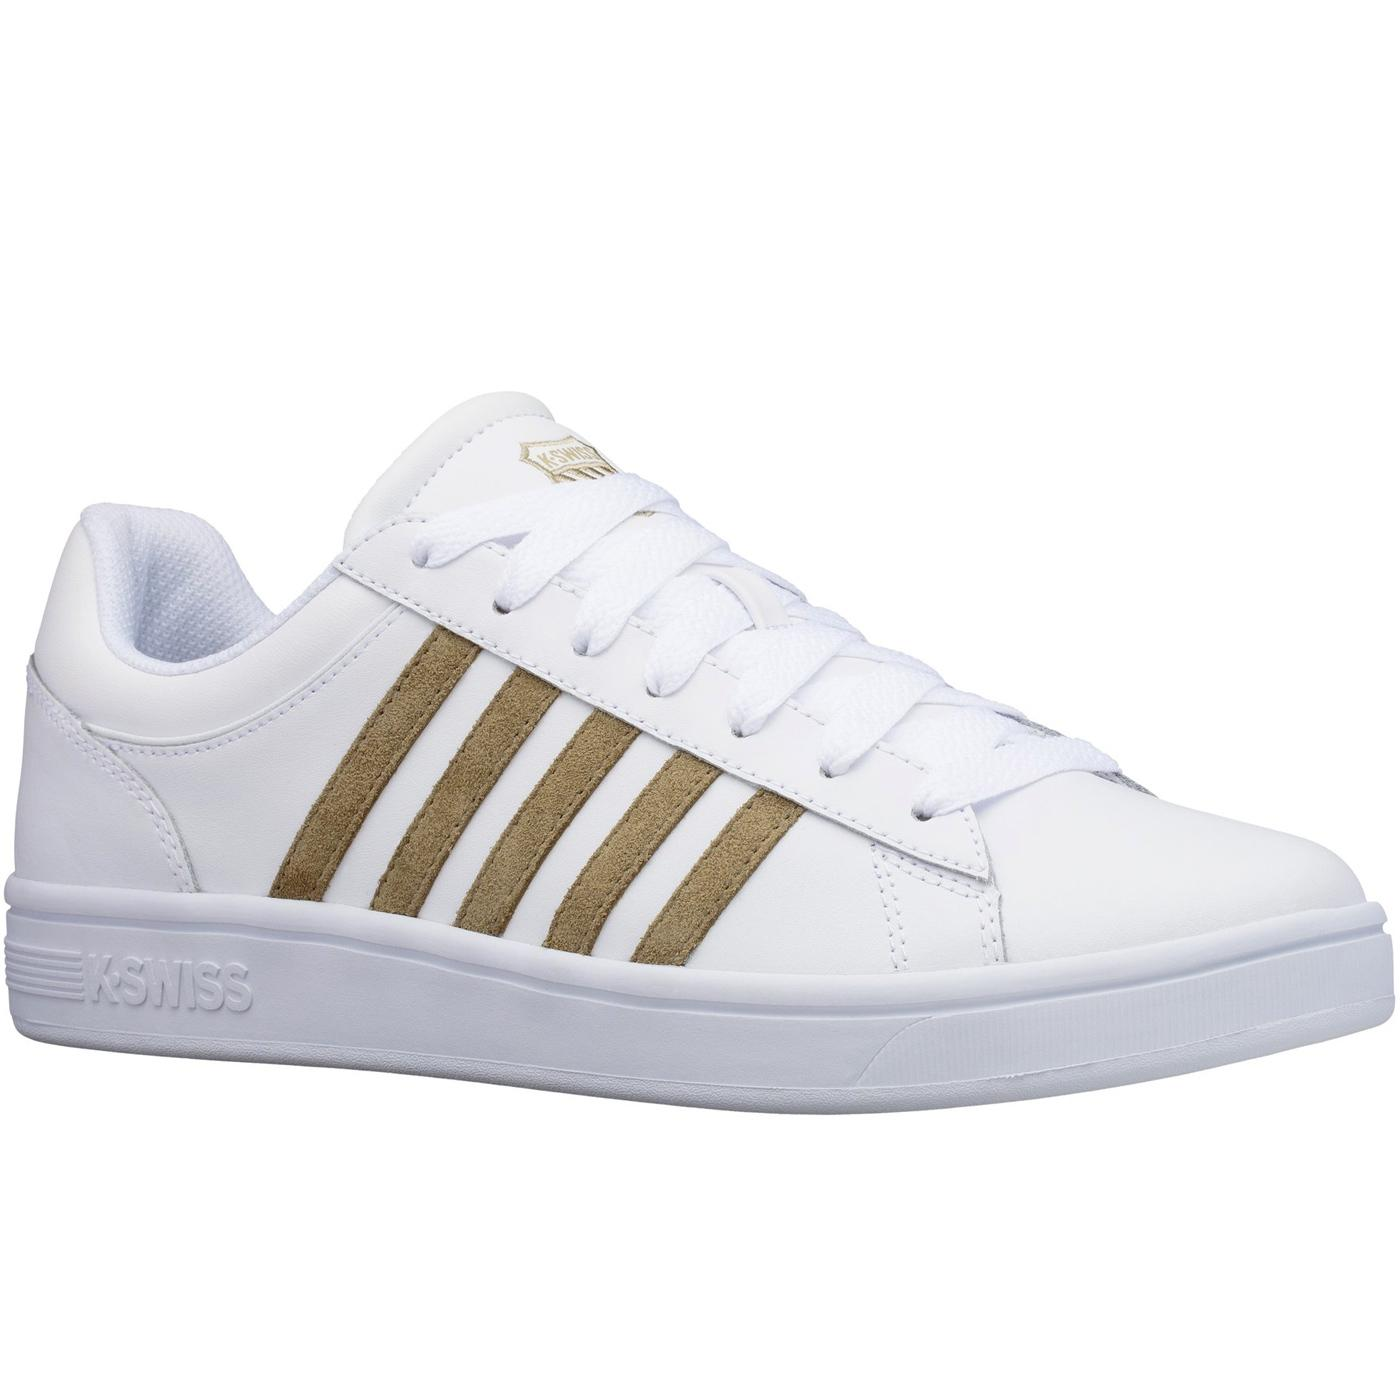 Court Winston K-SWISS Men's Retro Trainers (W/OD